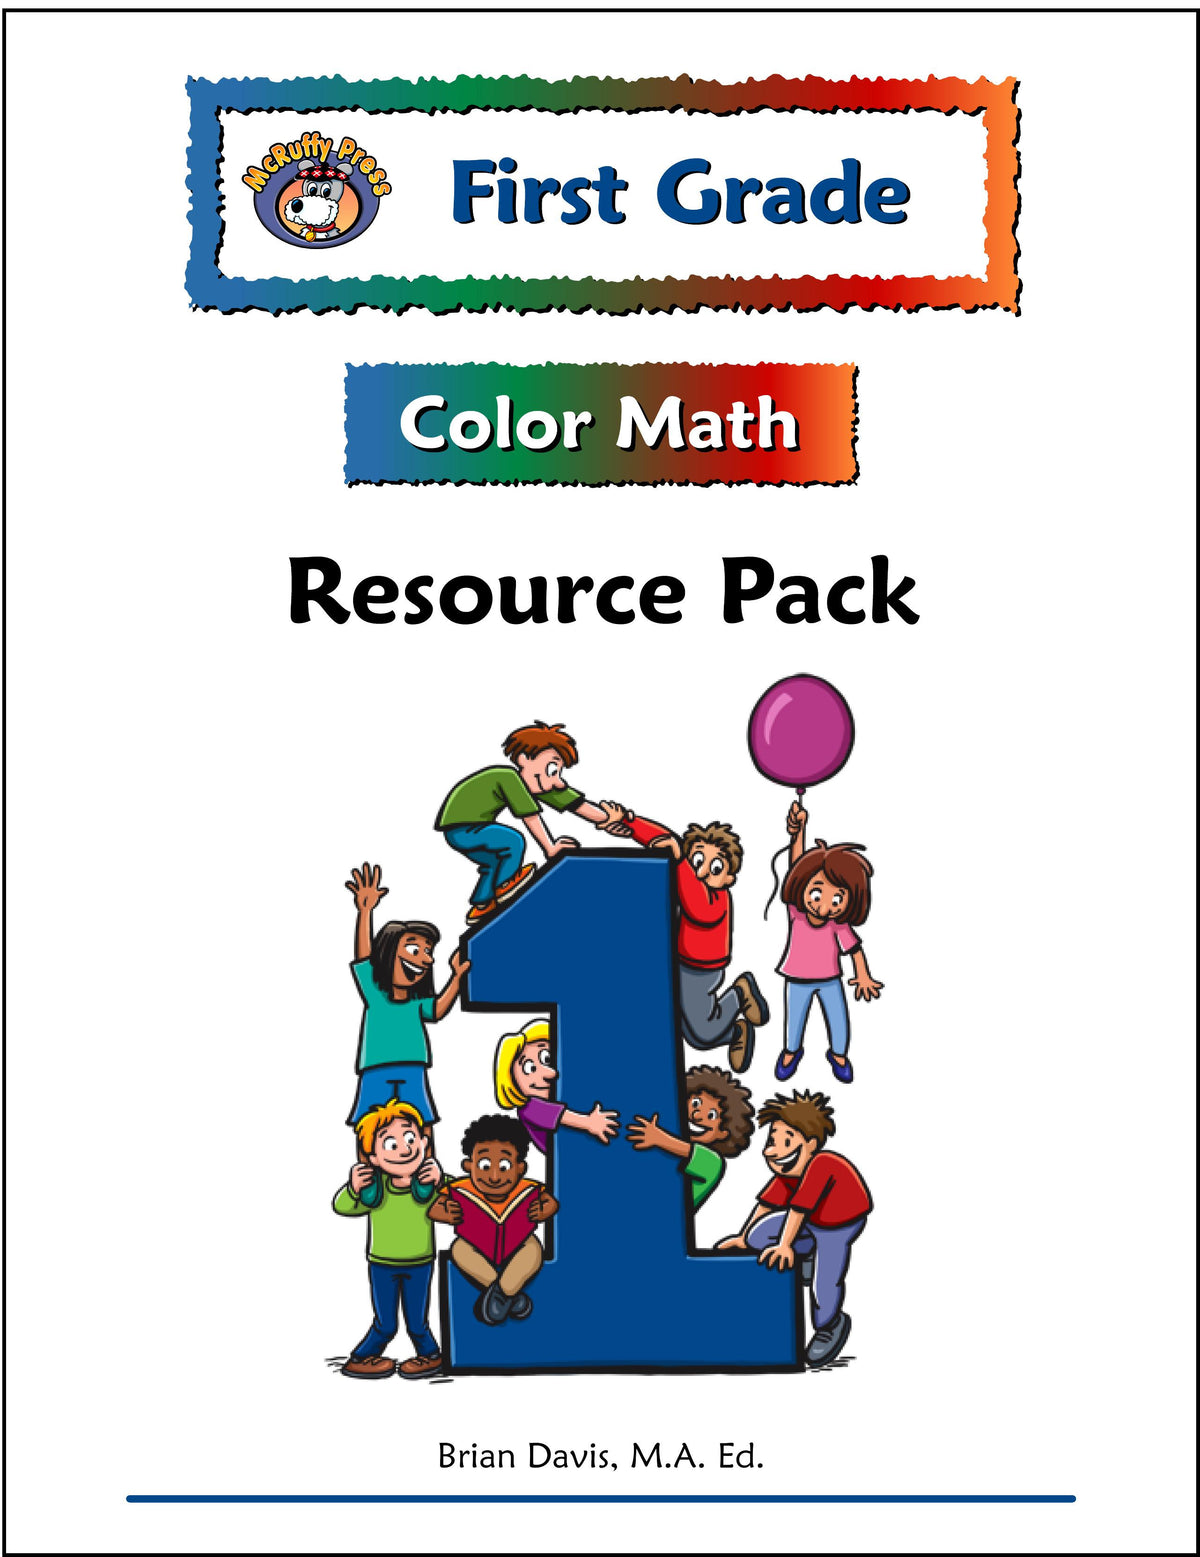 Worksheet First Grade first grade color math resource pack mcruffy press pack